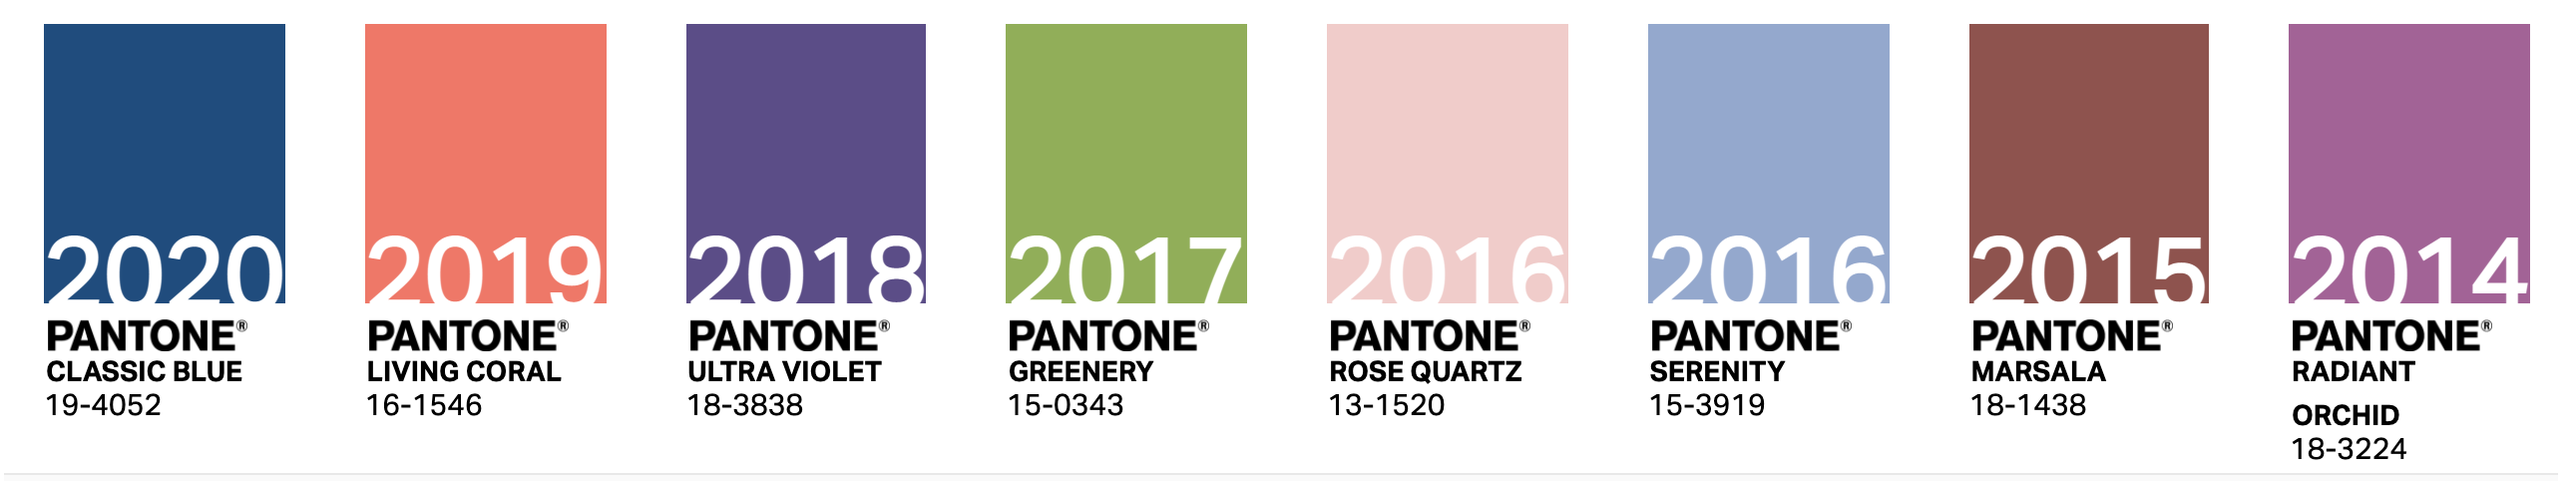 From https://www.pantone.com/color-of-the-year-2021